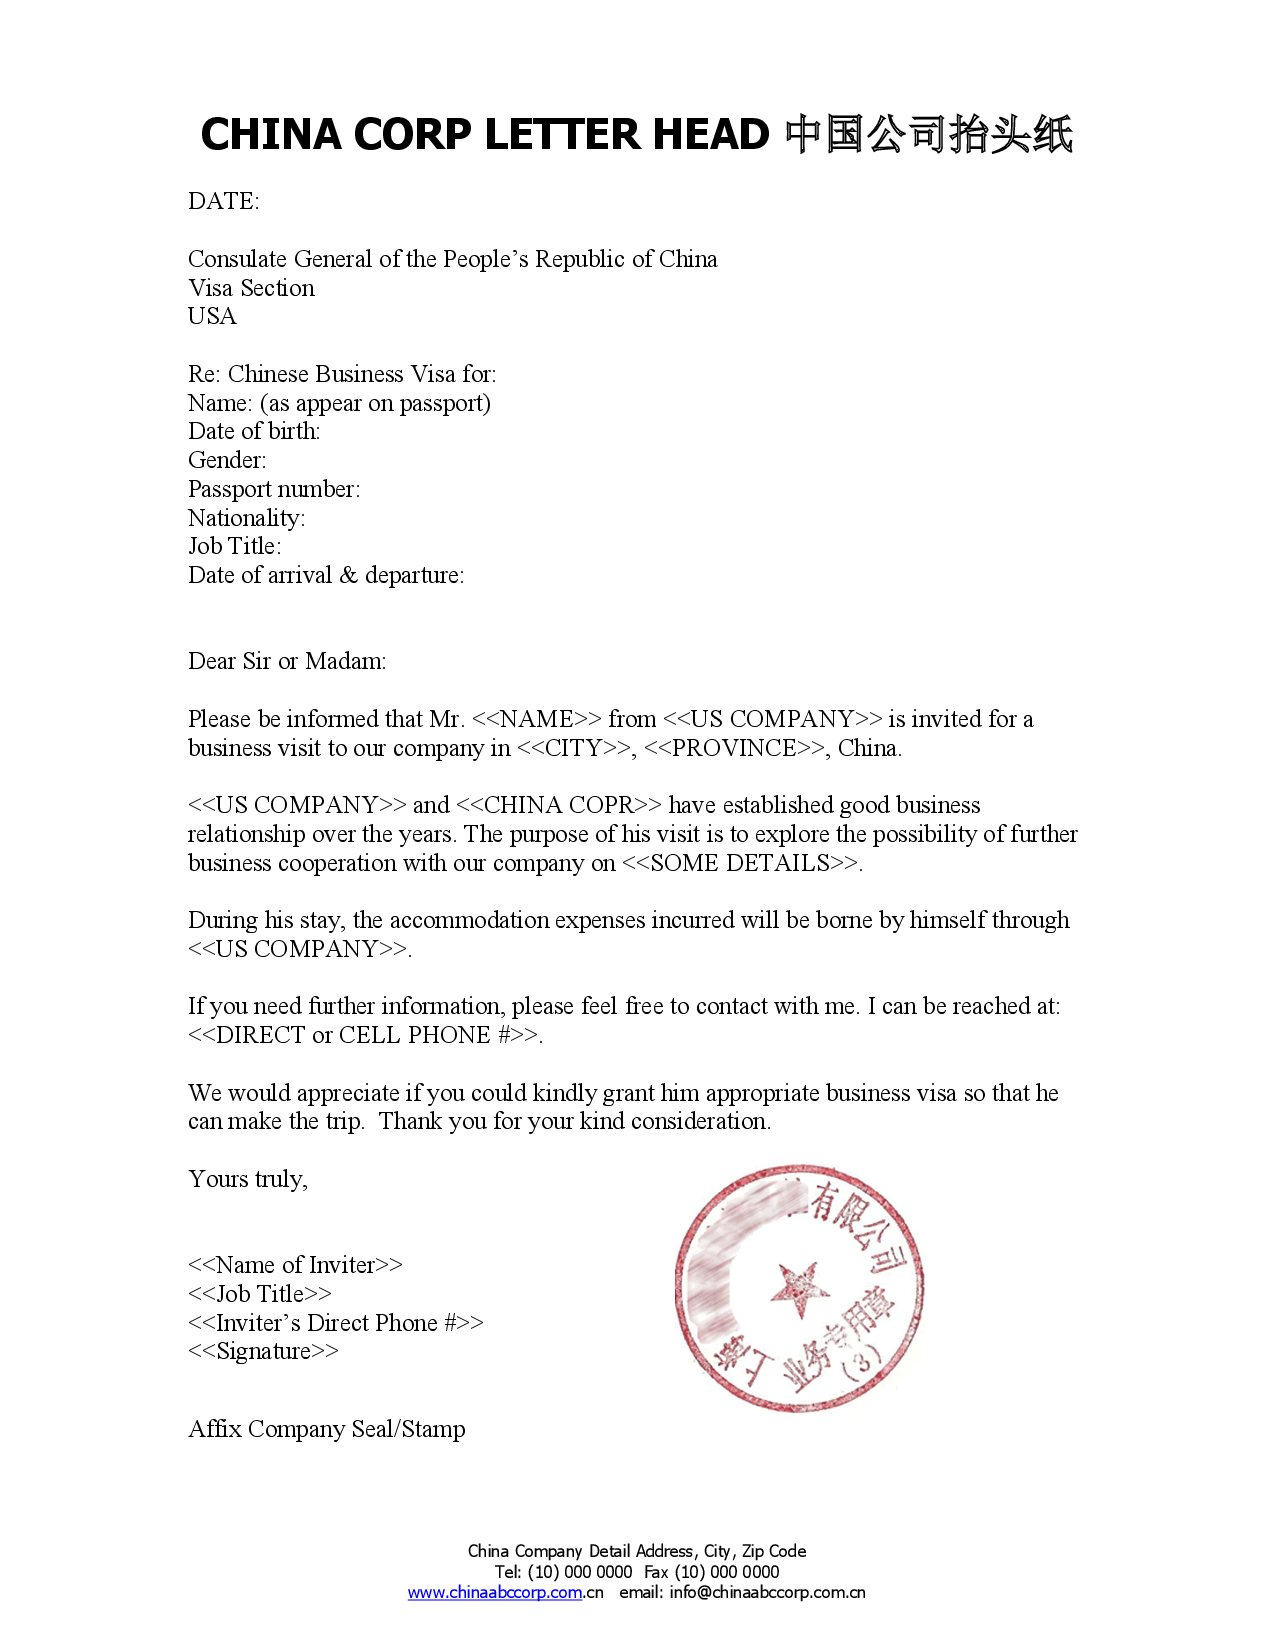 format invitation letter for business visa to china lettervisa invitation letter application letter sample